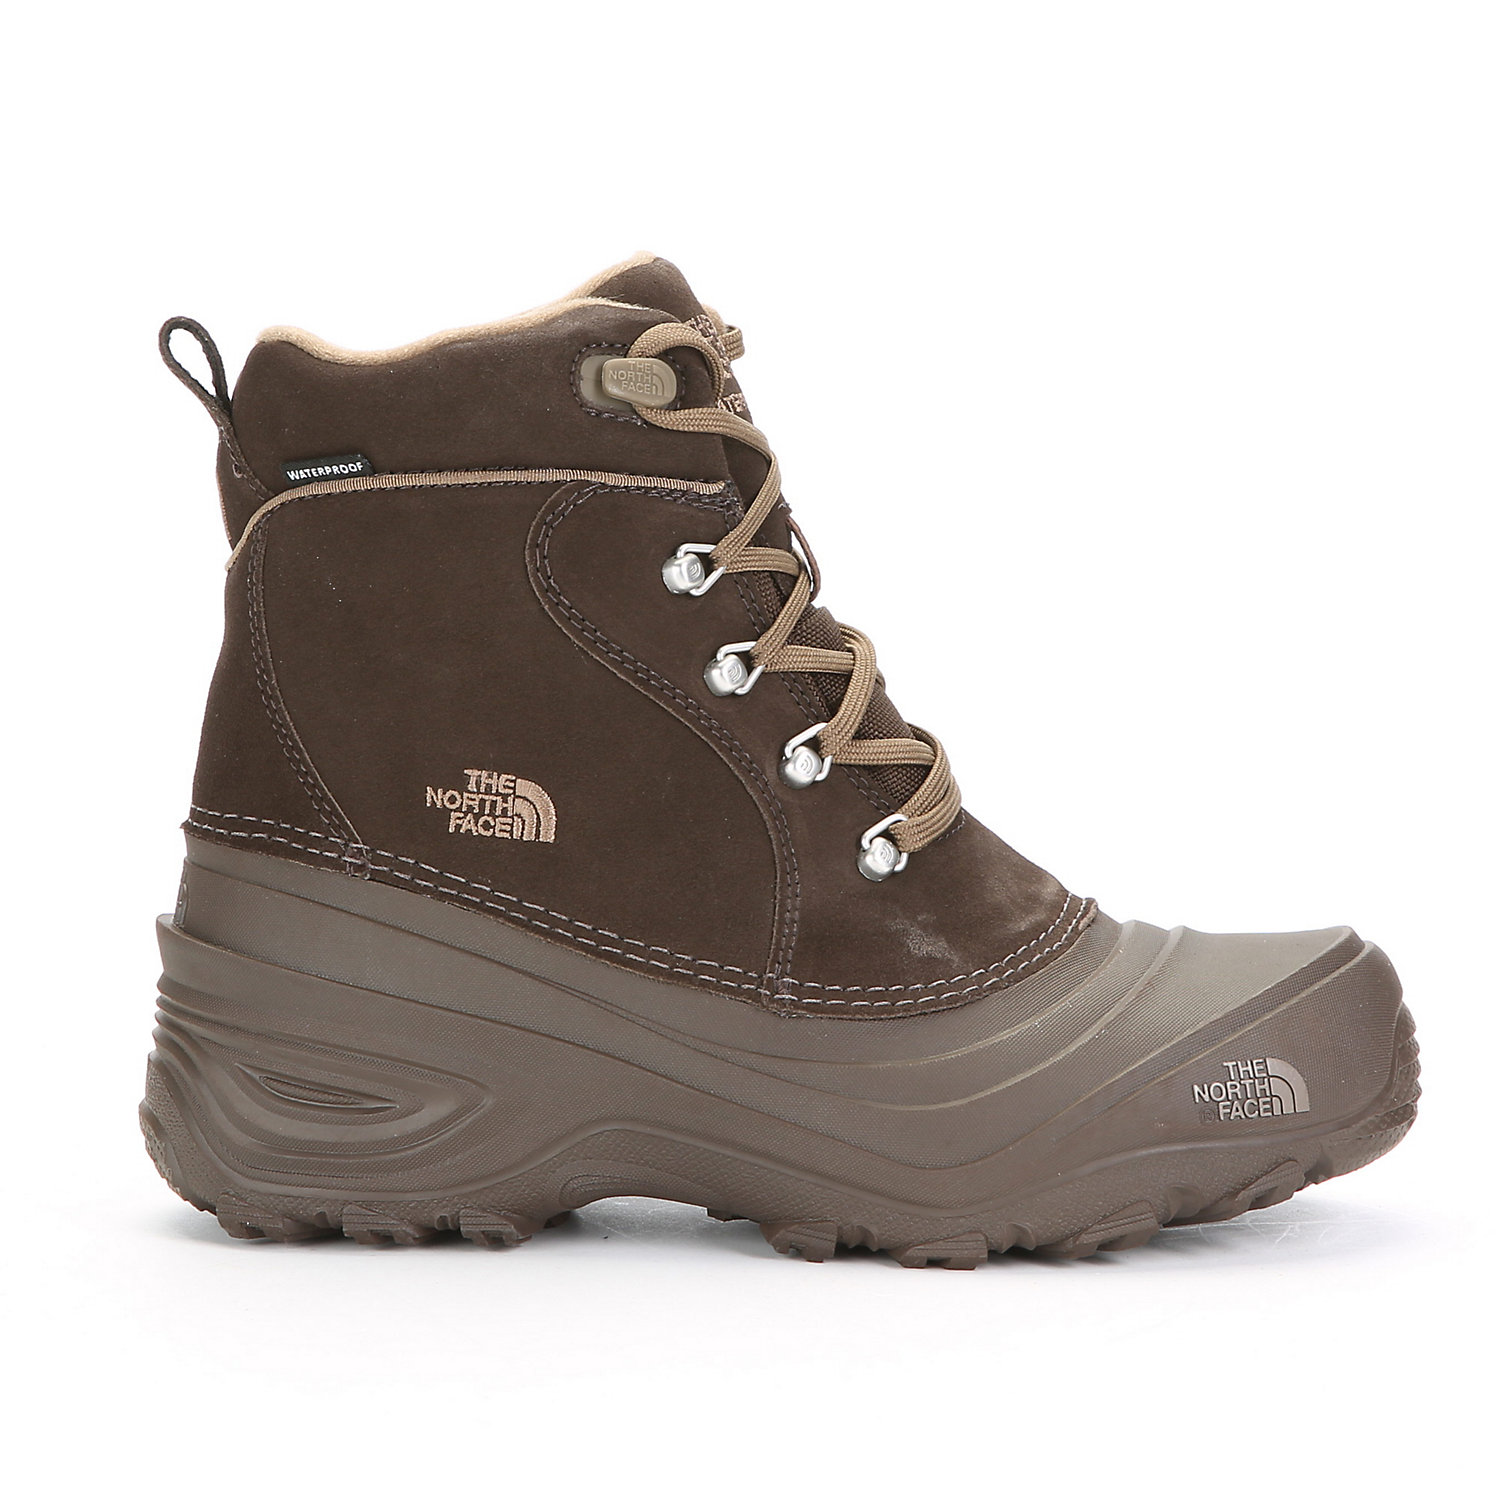 a2e7d0d28 The North Face Youth Chilkat Lace II Boot